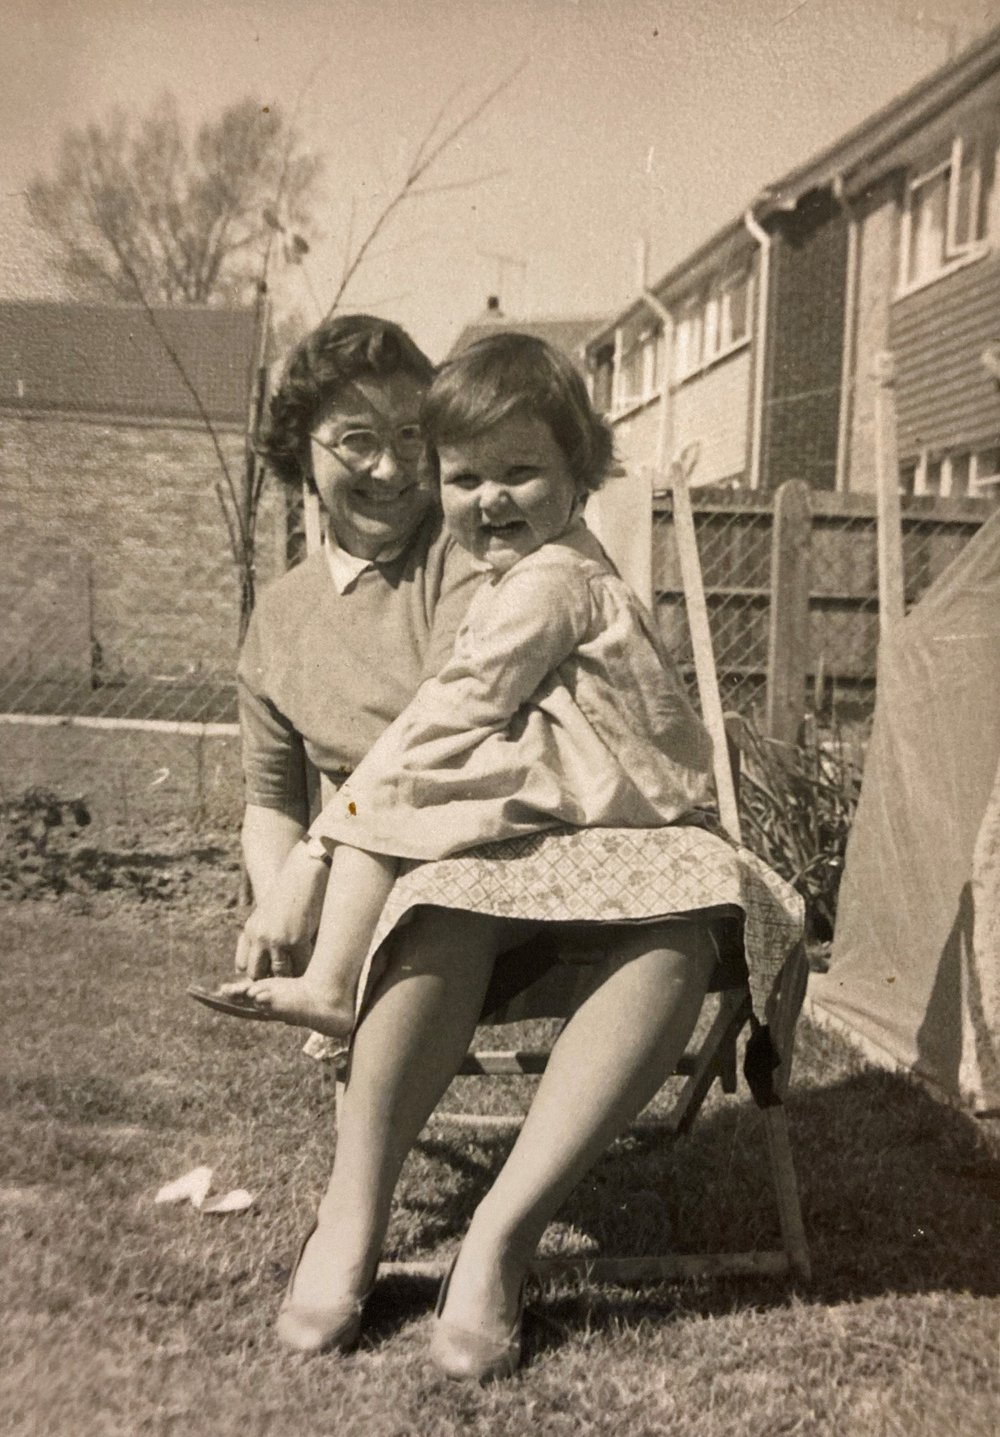 Image showing Christine and a young child sitting on her lap